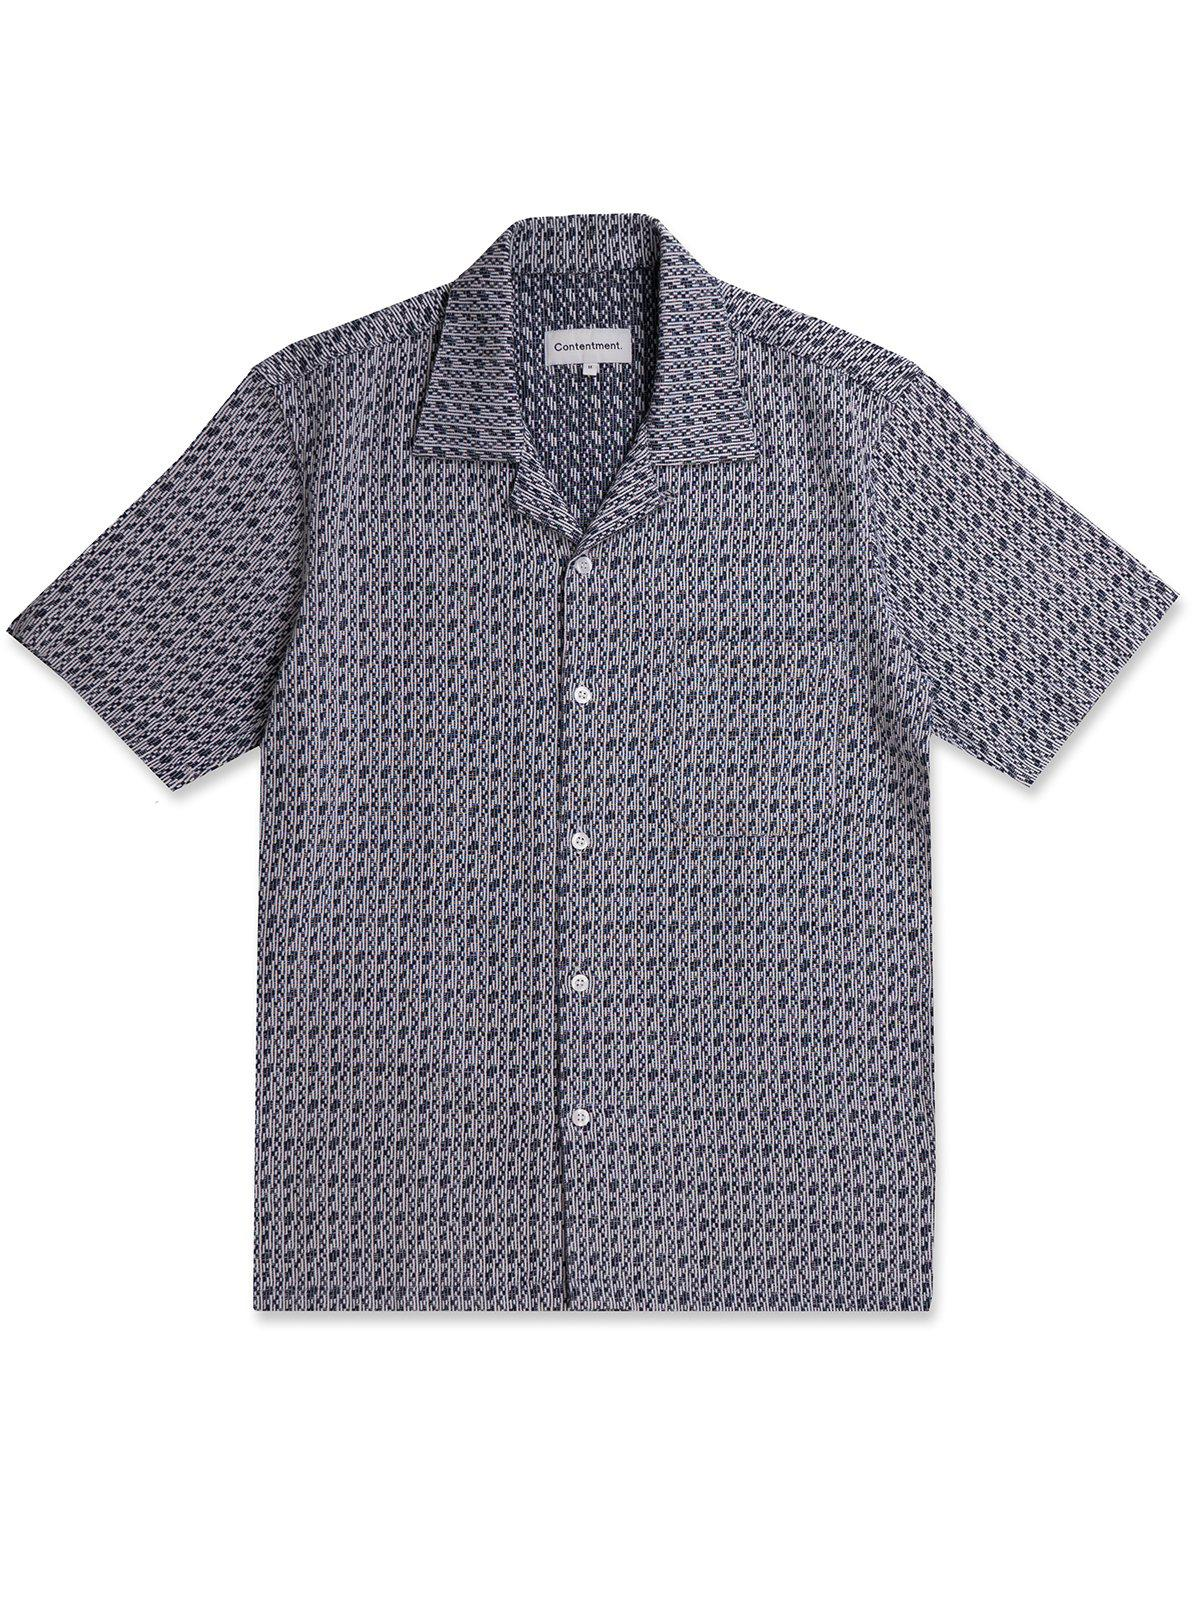 Contentment. Relaxed Textural Weave Shirt - MORE by Morello Indonesia